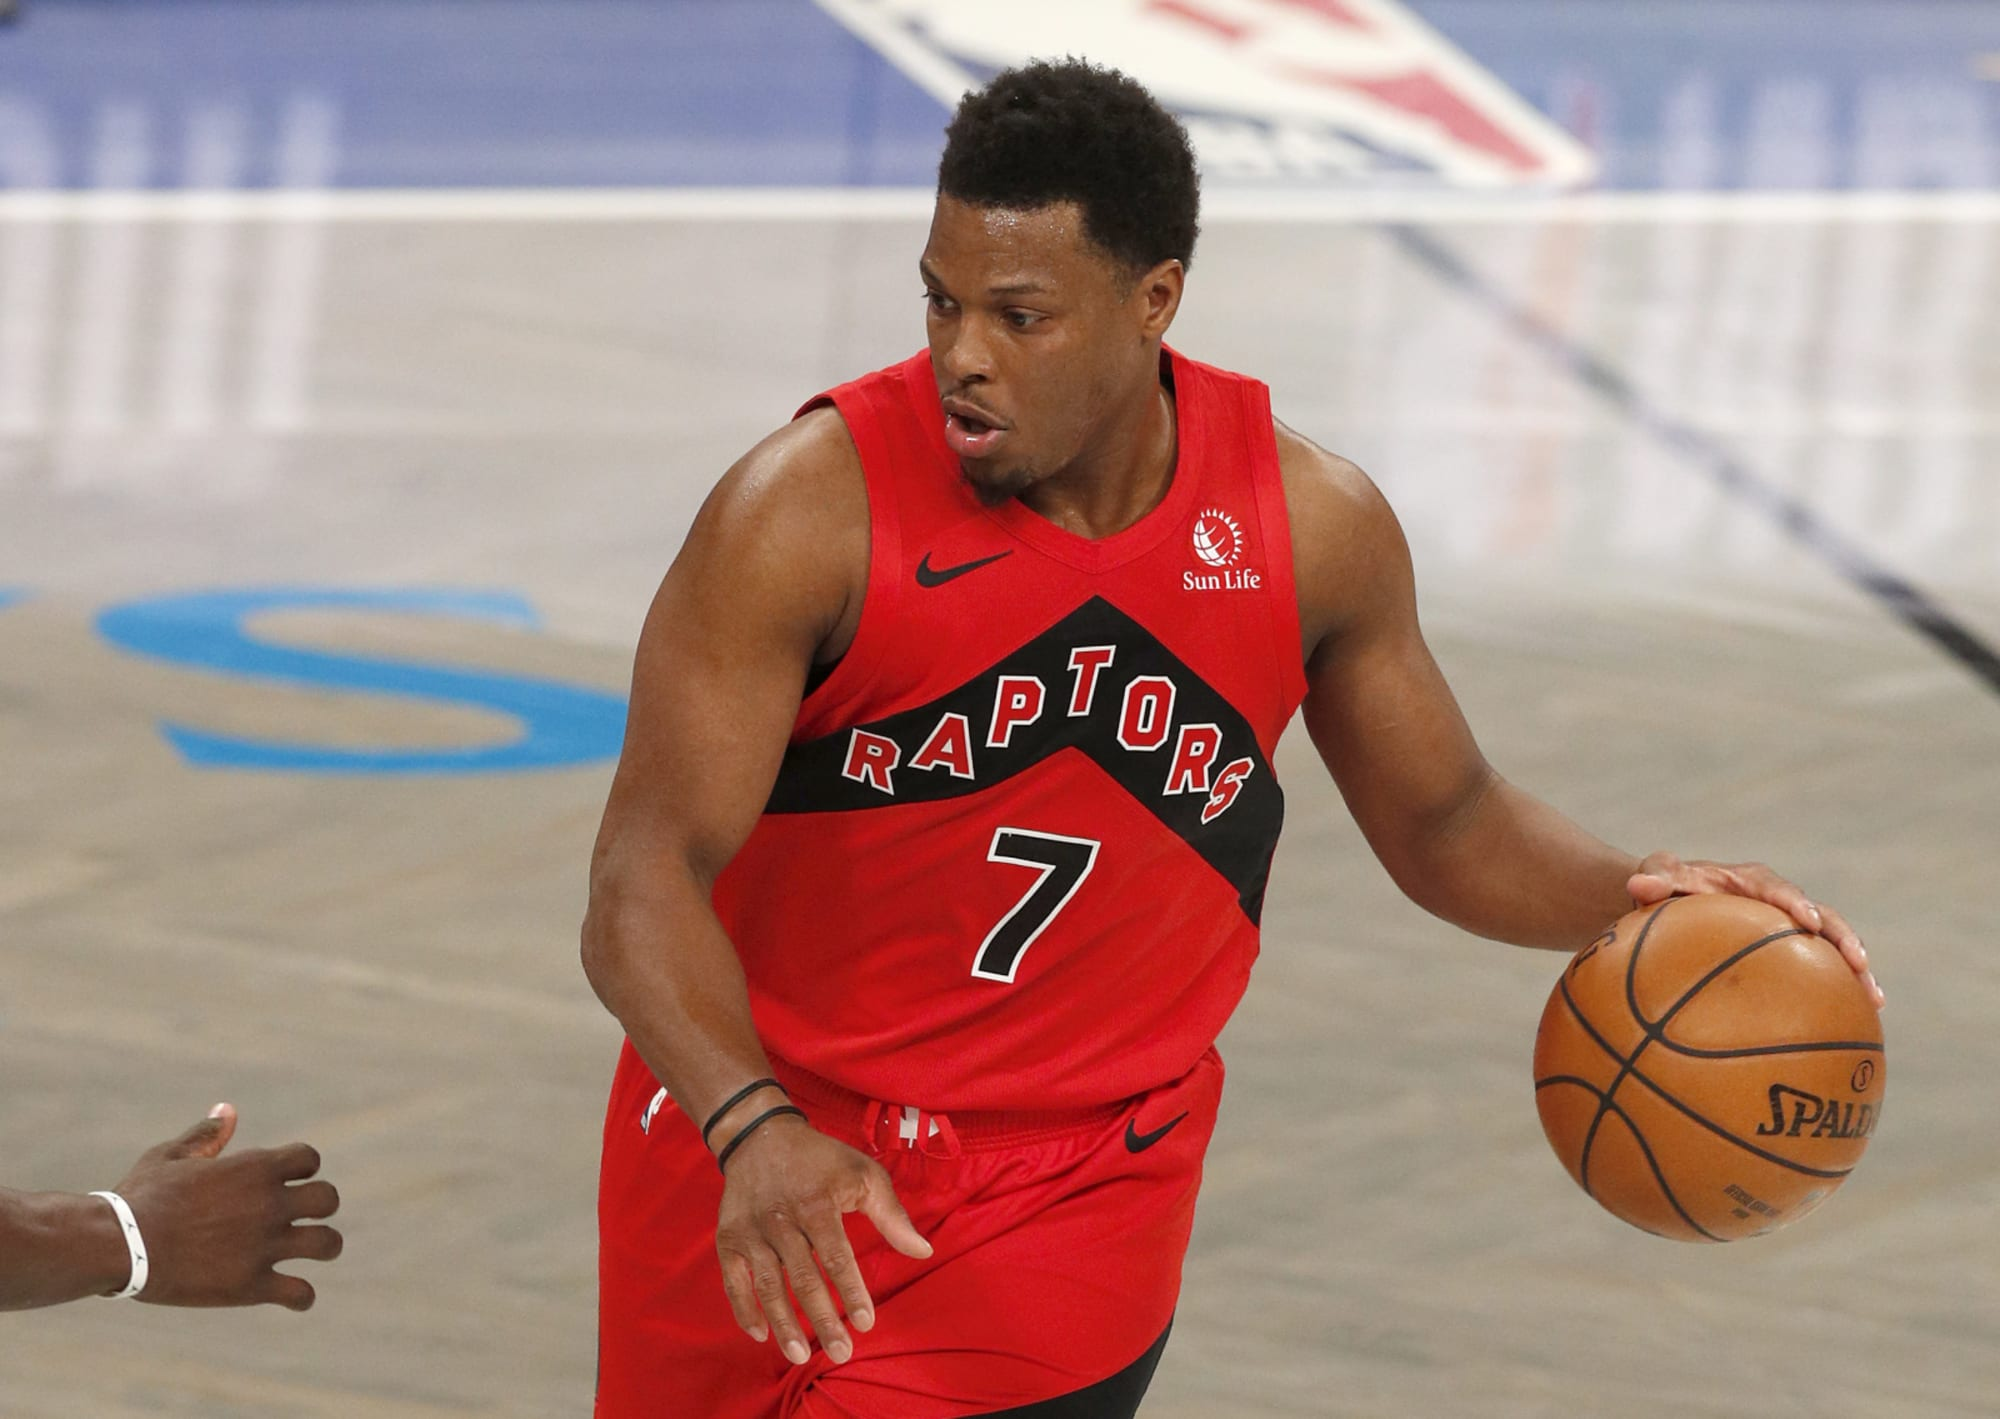 Raptors: Latest rumors suggest Kyle Lowry could still be traded to 76ers